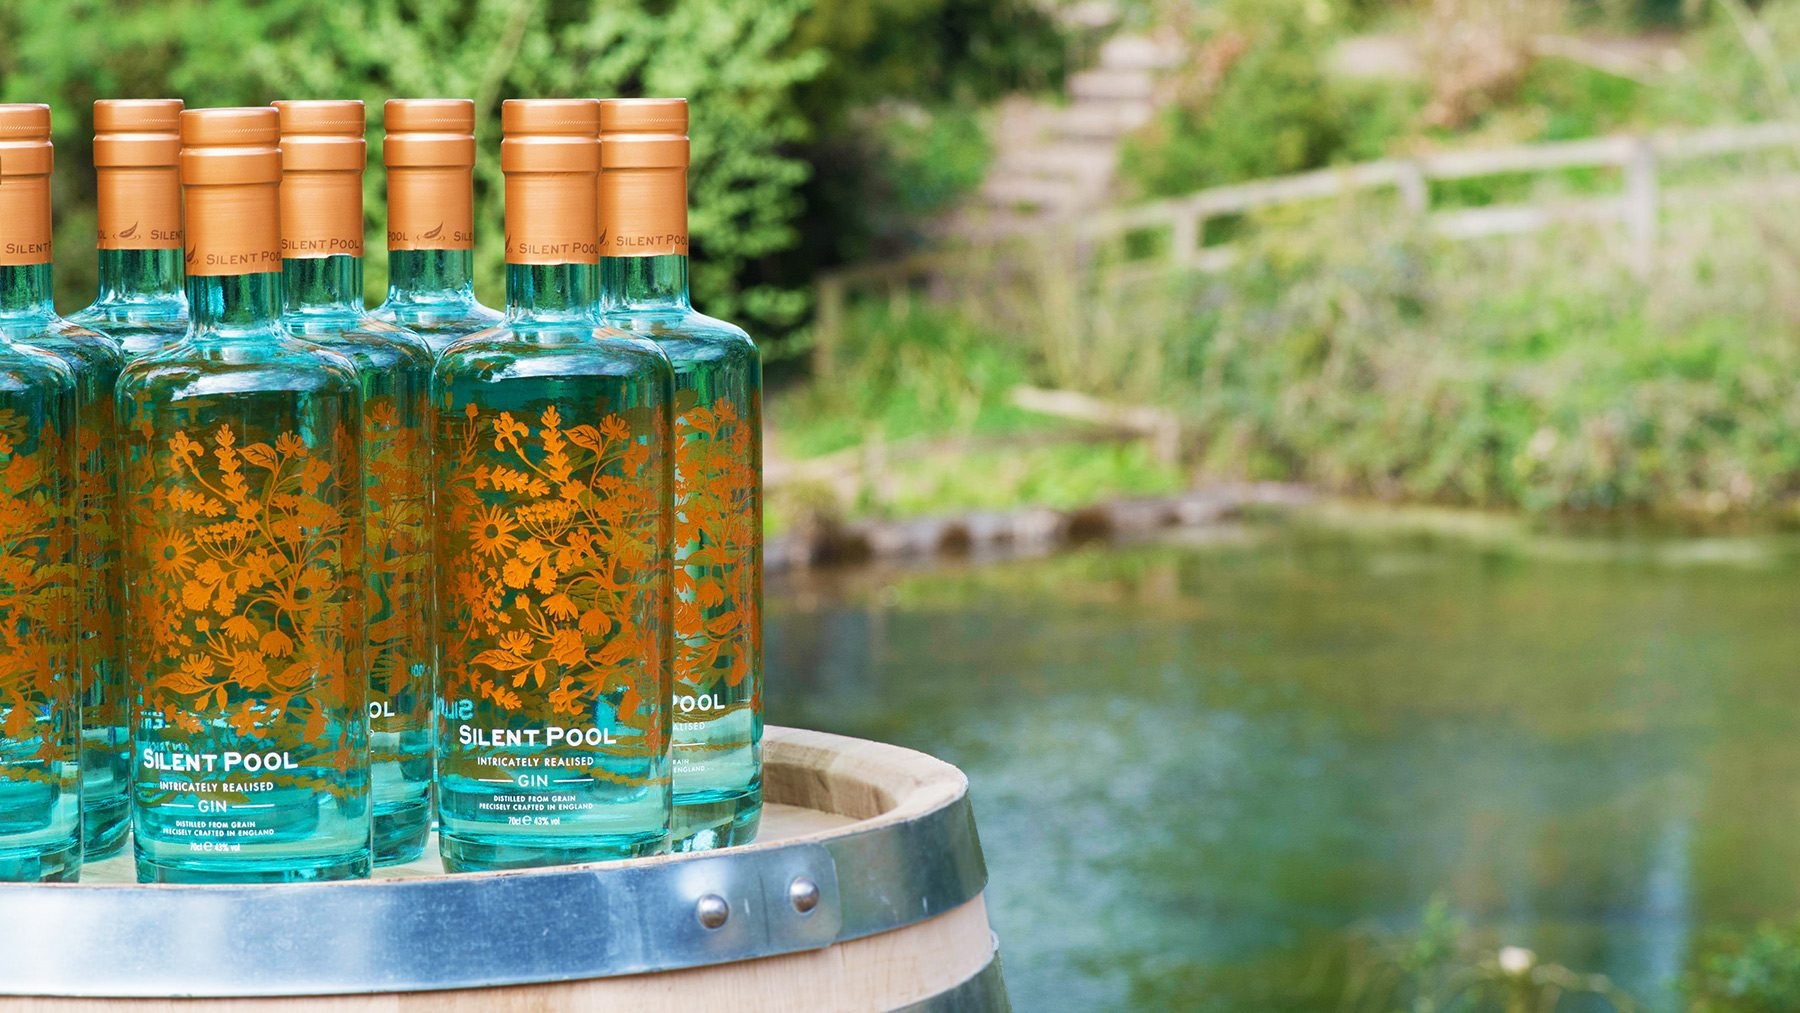 Enjoy a Silent Pool Gin tour close to the hotel